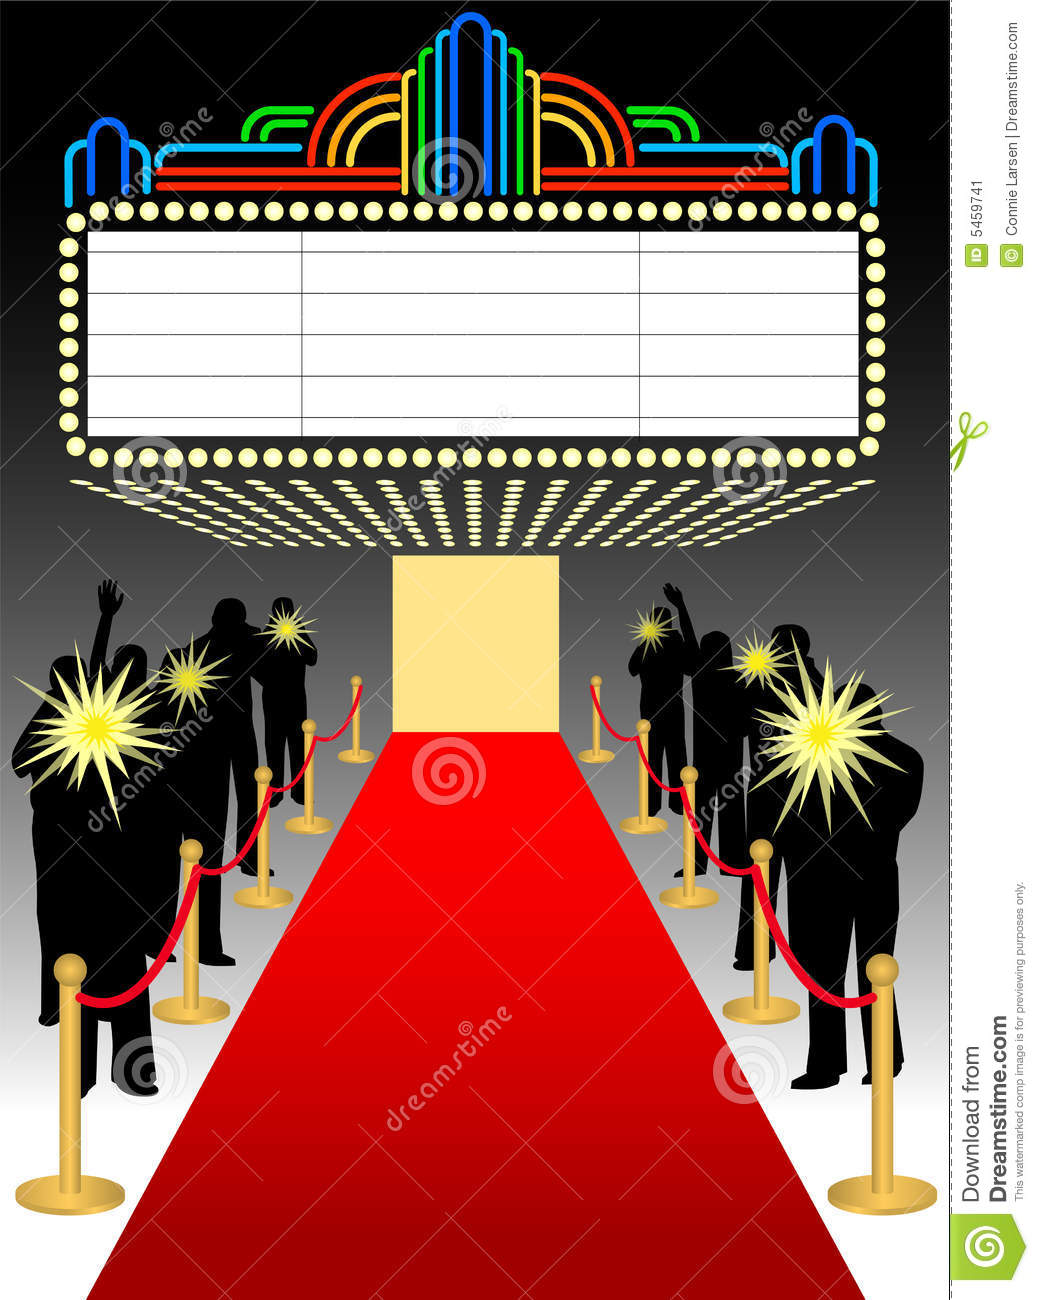 red carpet premier marquee  eps stock illustration image marquee clipart black and white clipart marquee sign